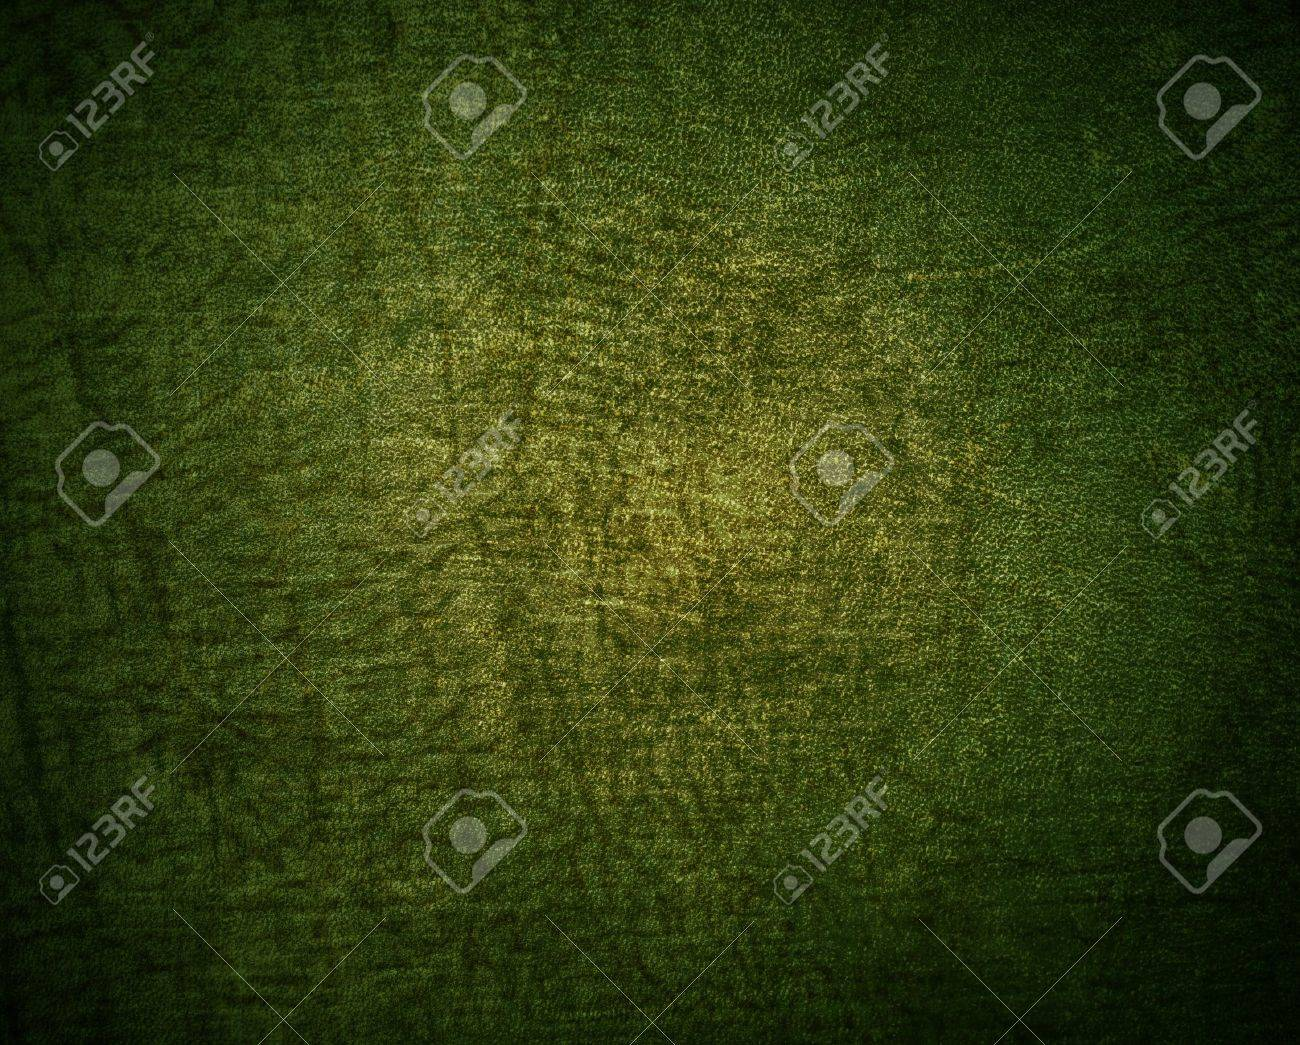 Natural qualitative green leather texture. Close up. Stock Photo - 13064991